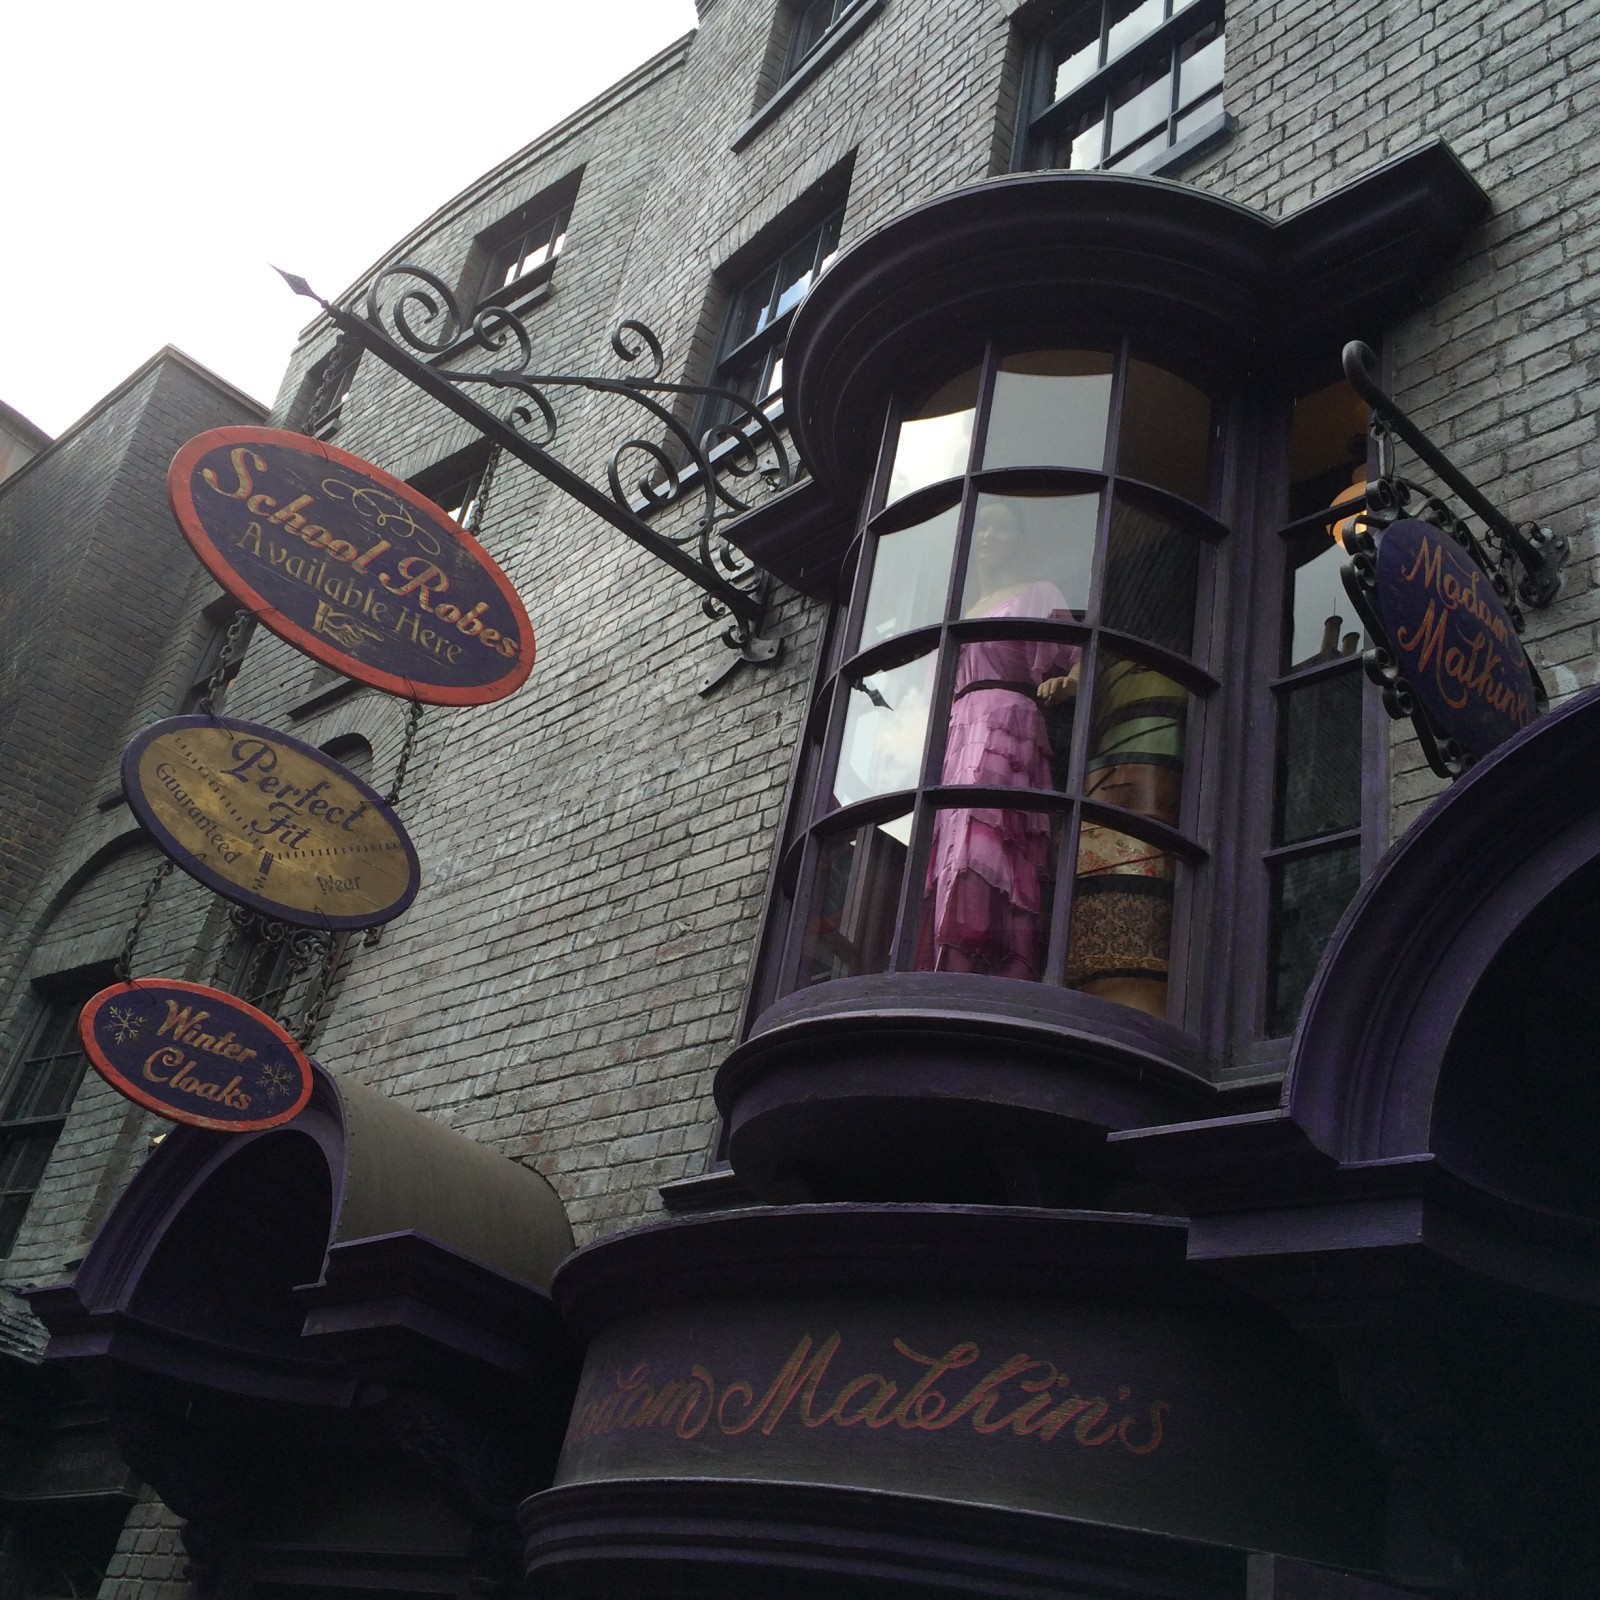 Diagon Alley Introduction - Madame Malkins Universal Orlando